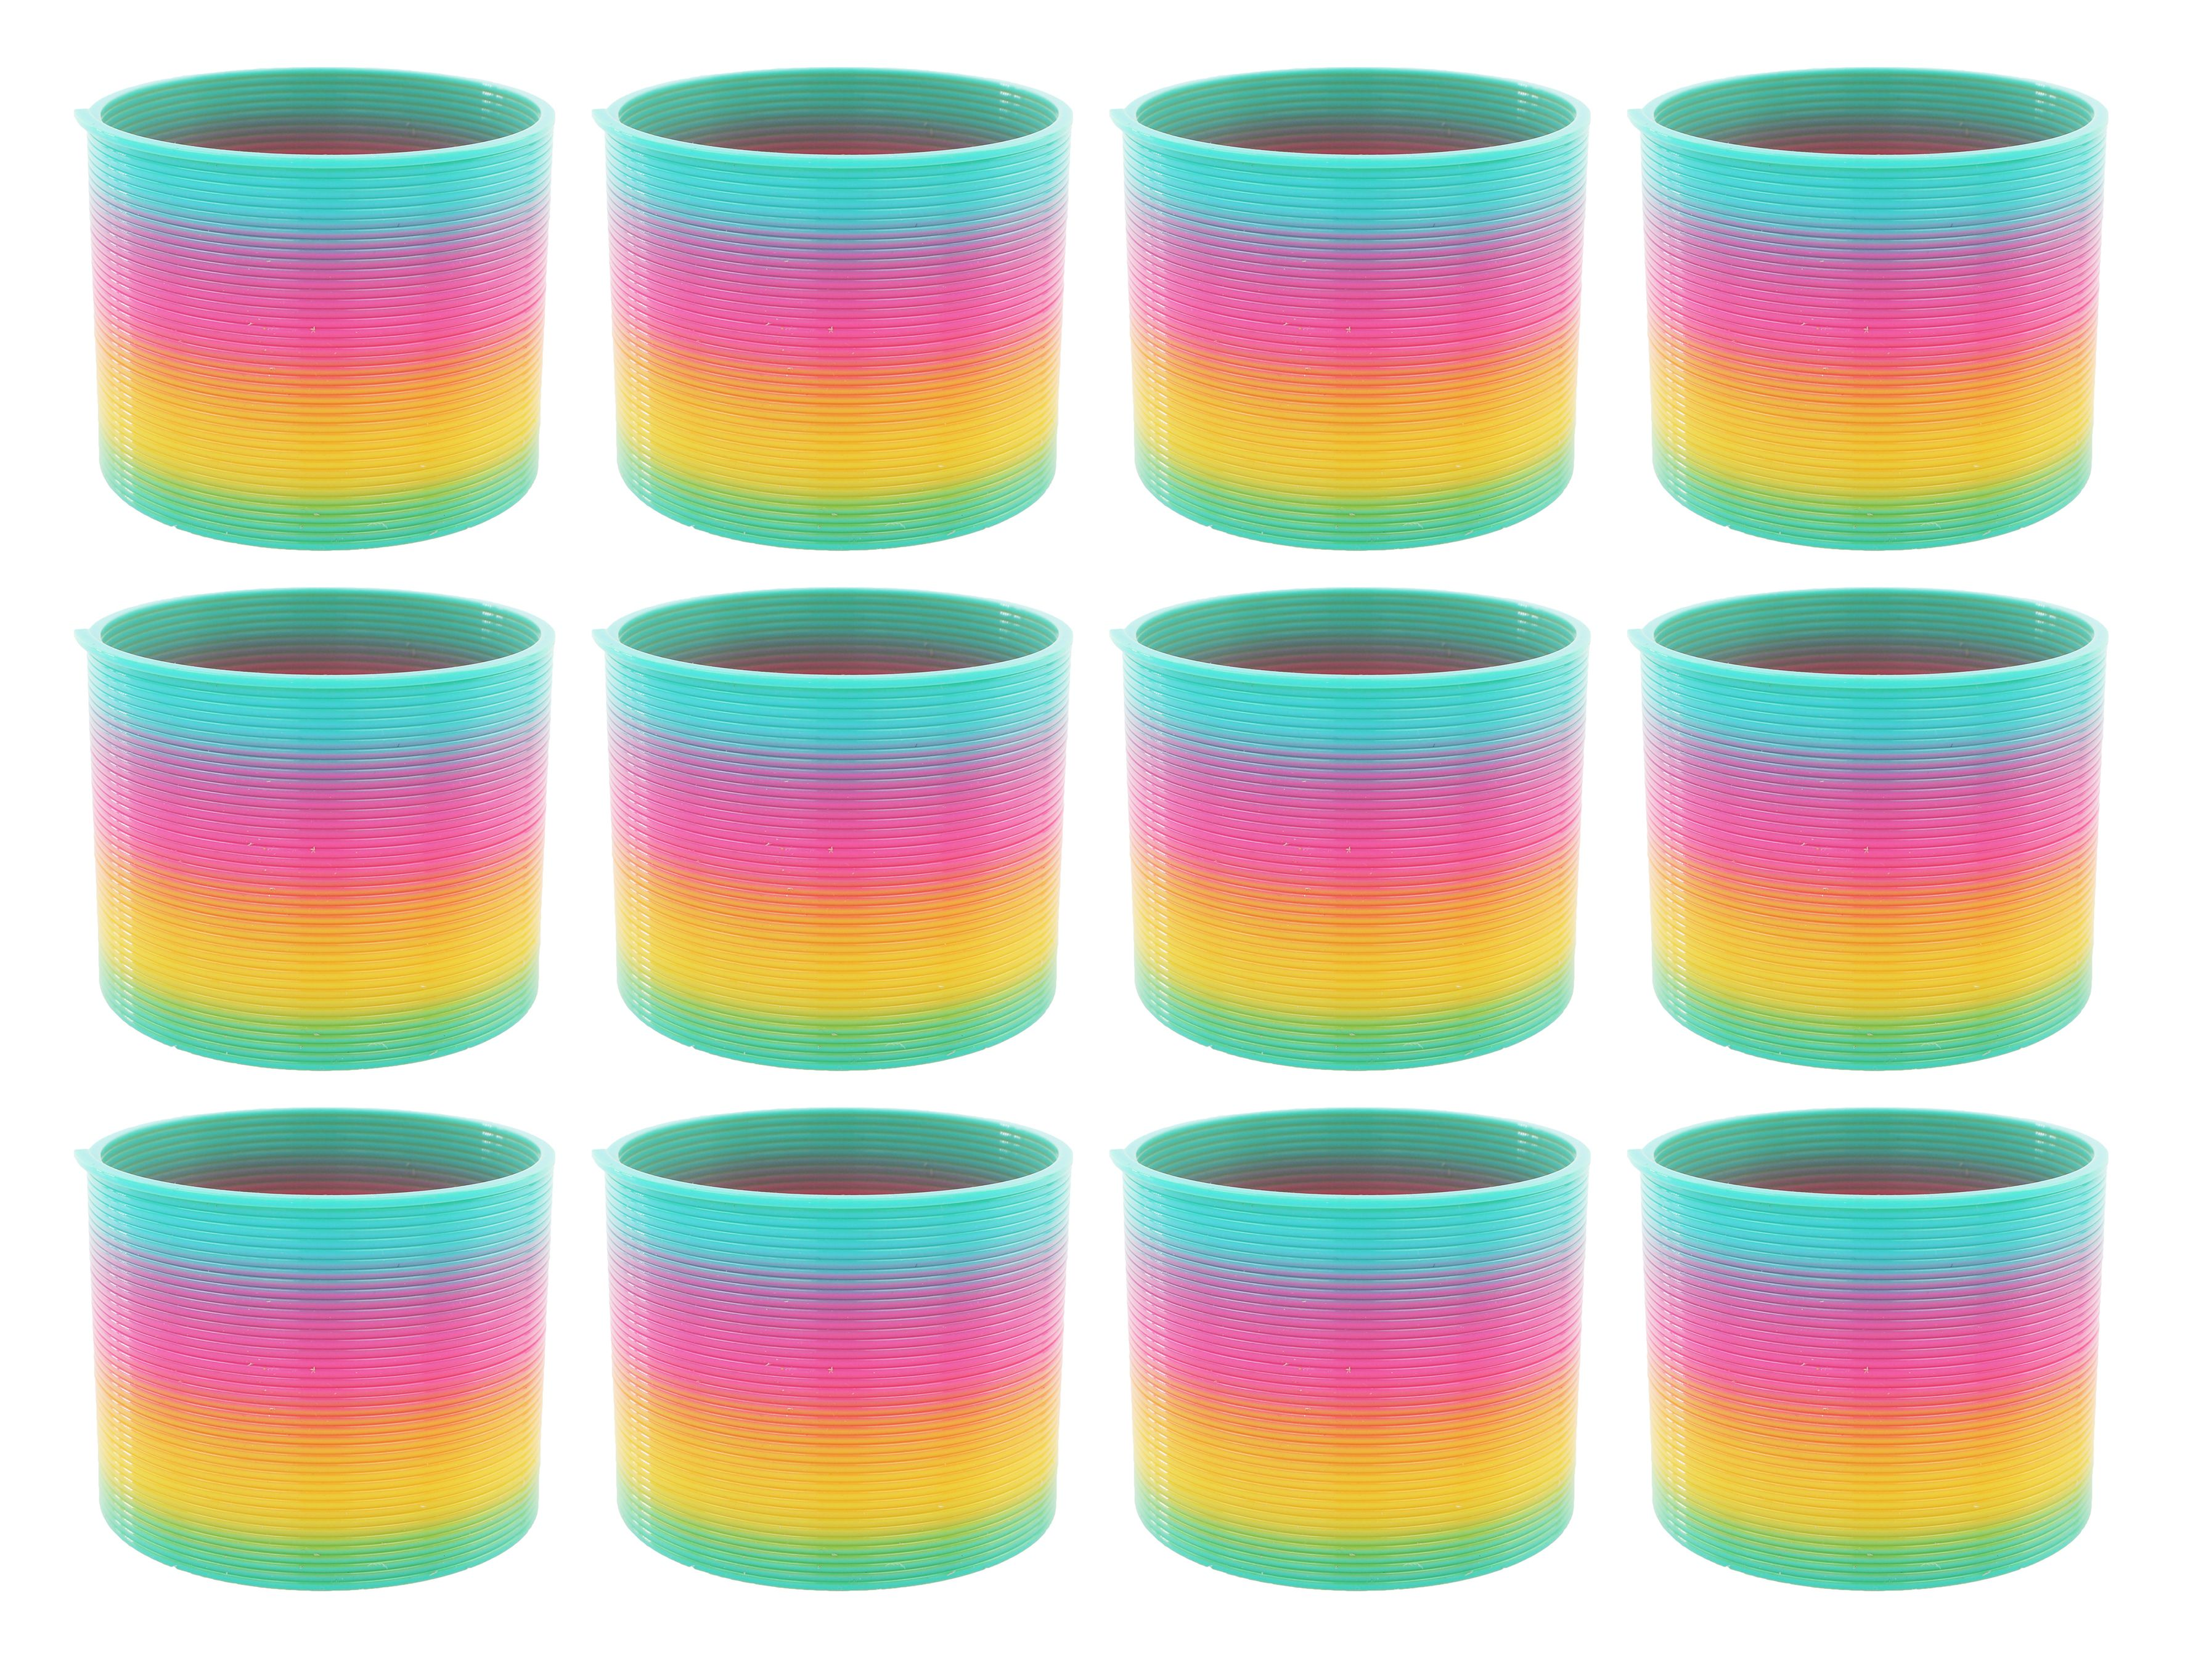 12 Pack Classic Slinky Spring Toy With Cool Rainbow Colors Plastic For Birthday Party Favors Goodie Bag Fillers Gifts